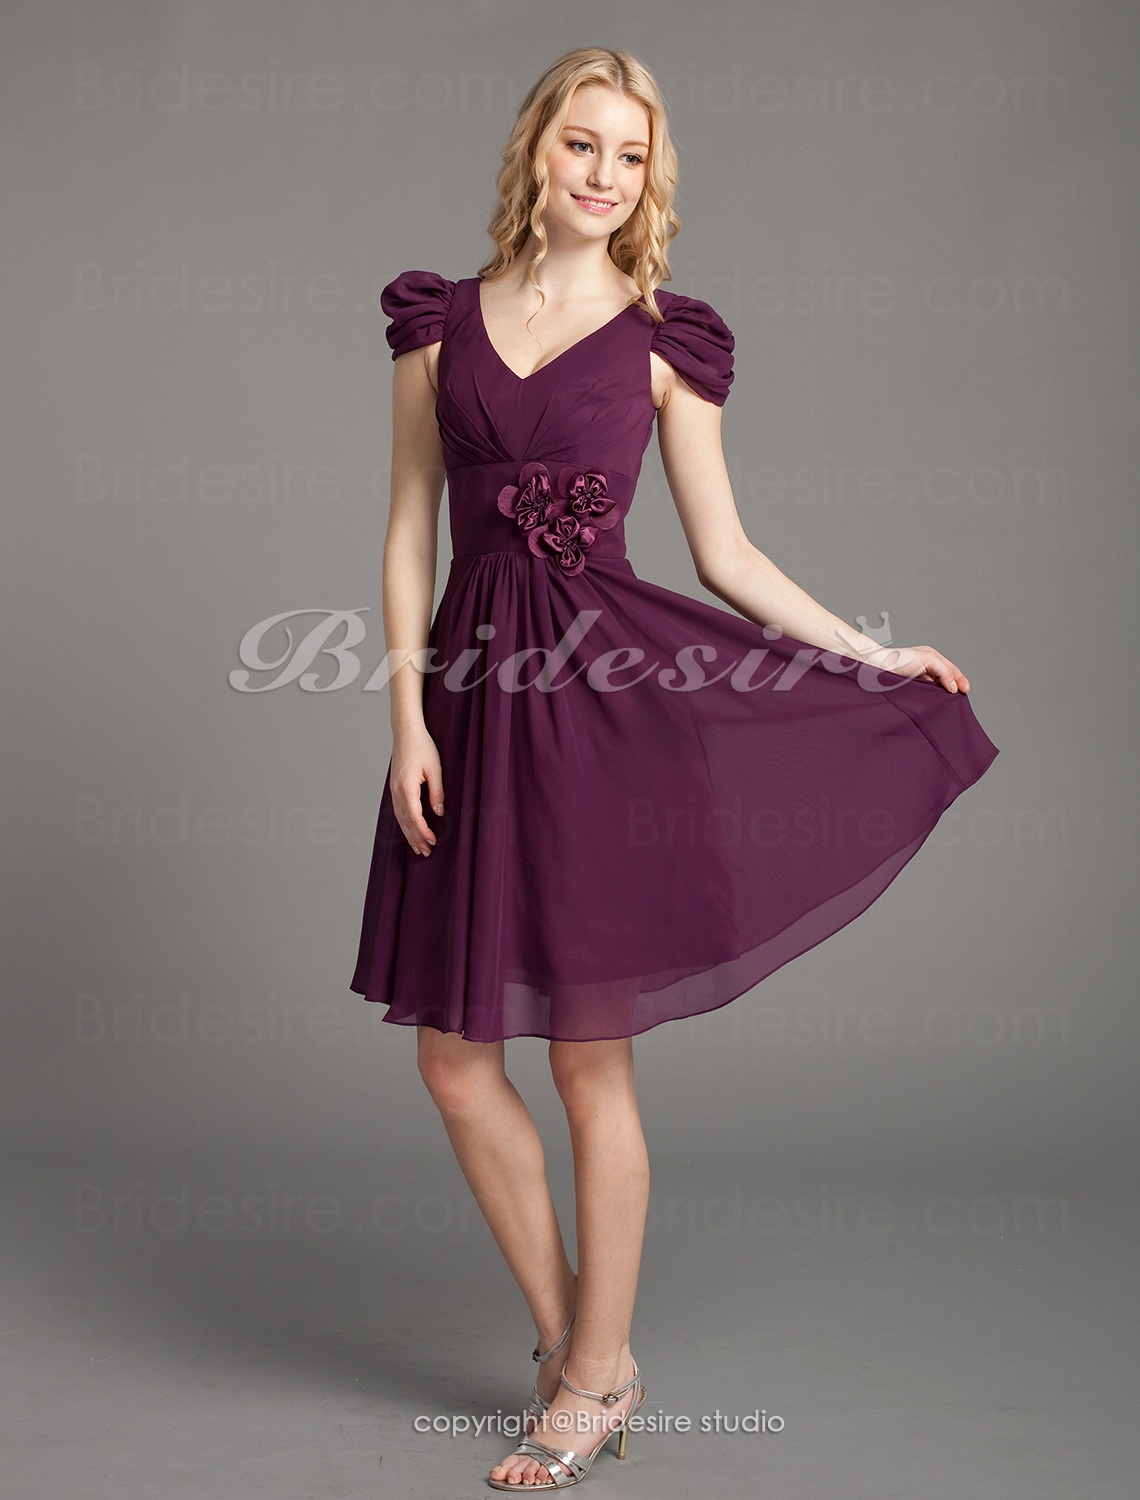 A-line Chiffon Over Elastic Satin Knee-length V-neck Bridesmaid/ Wedding Party Dress